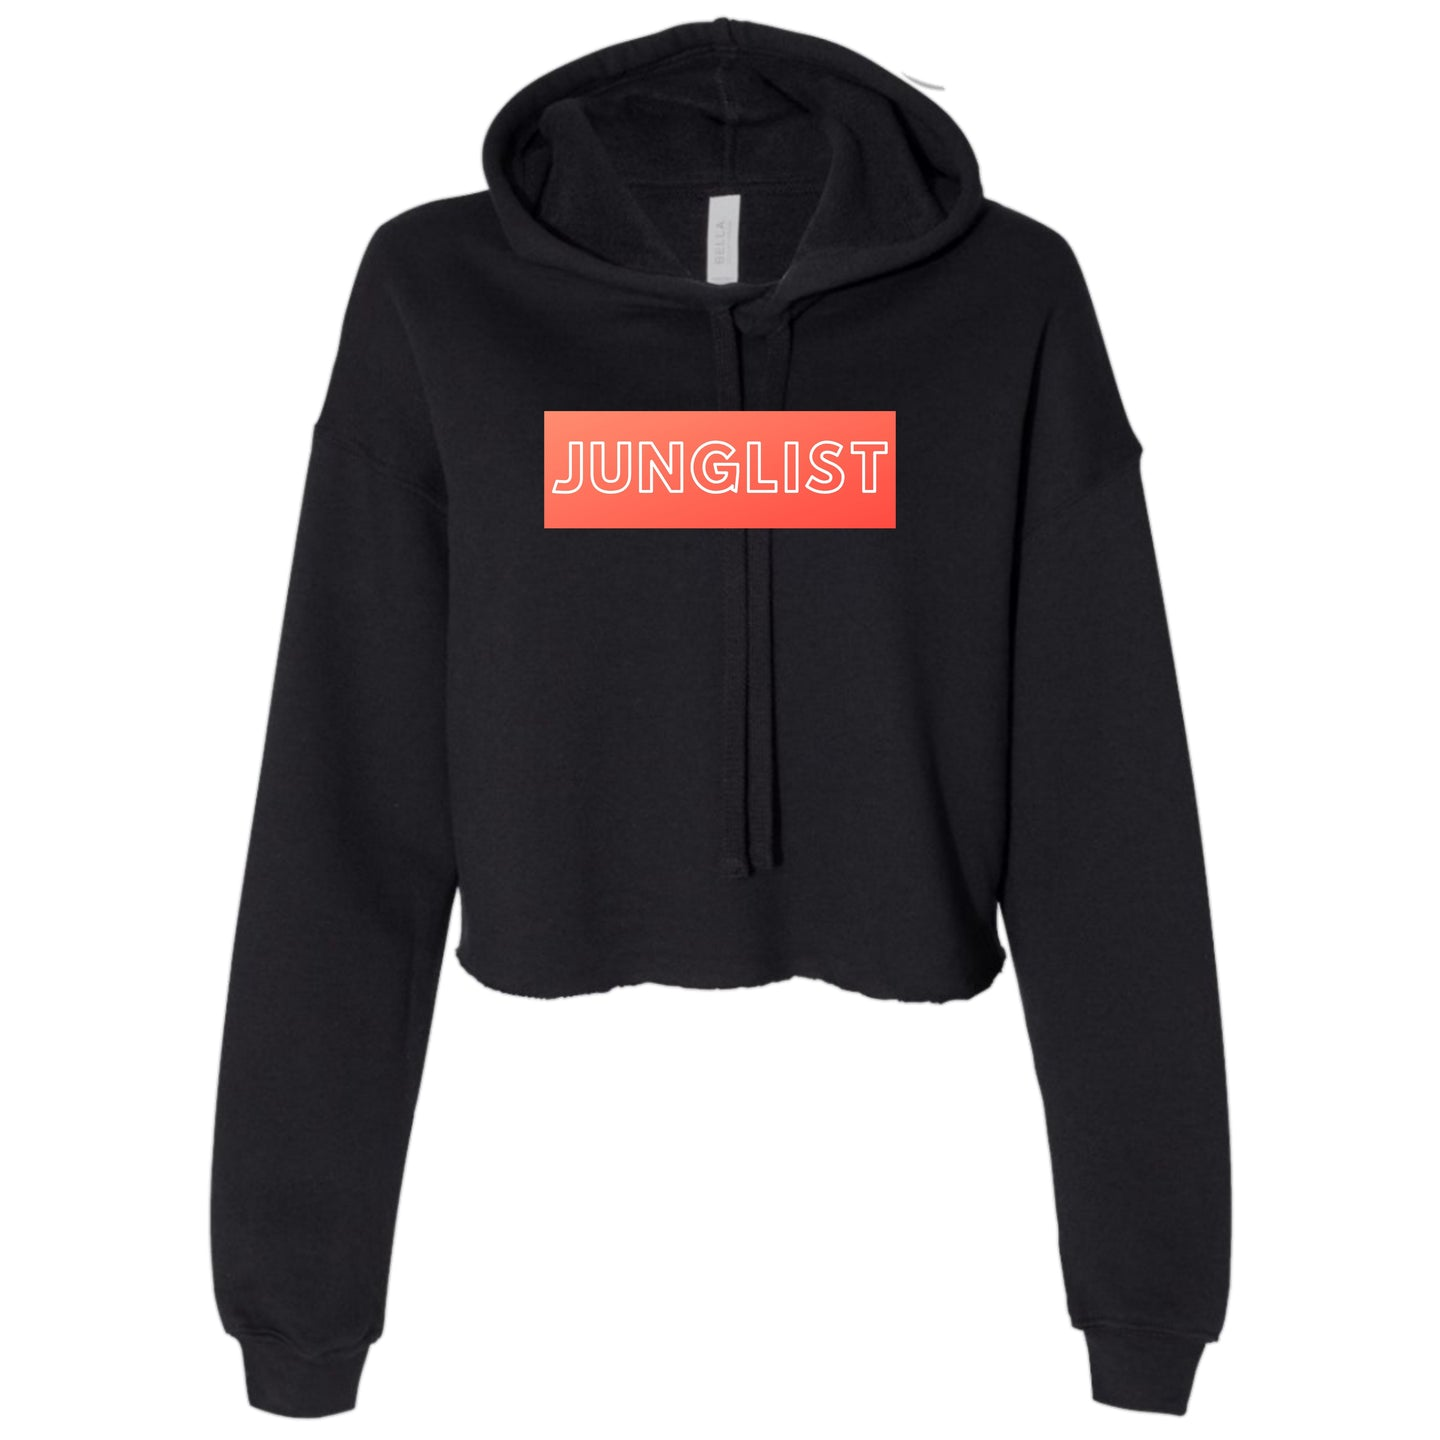 Ladies Junglist Cropped Hooded Sweater